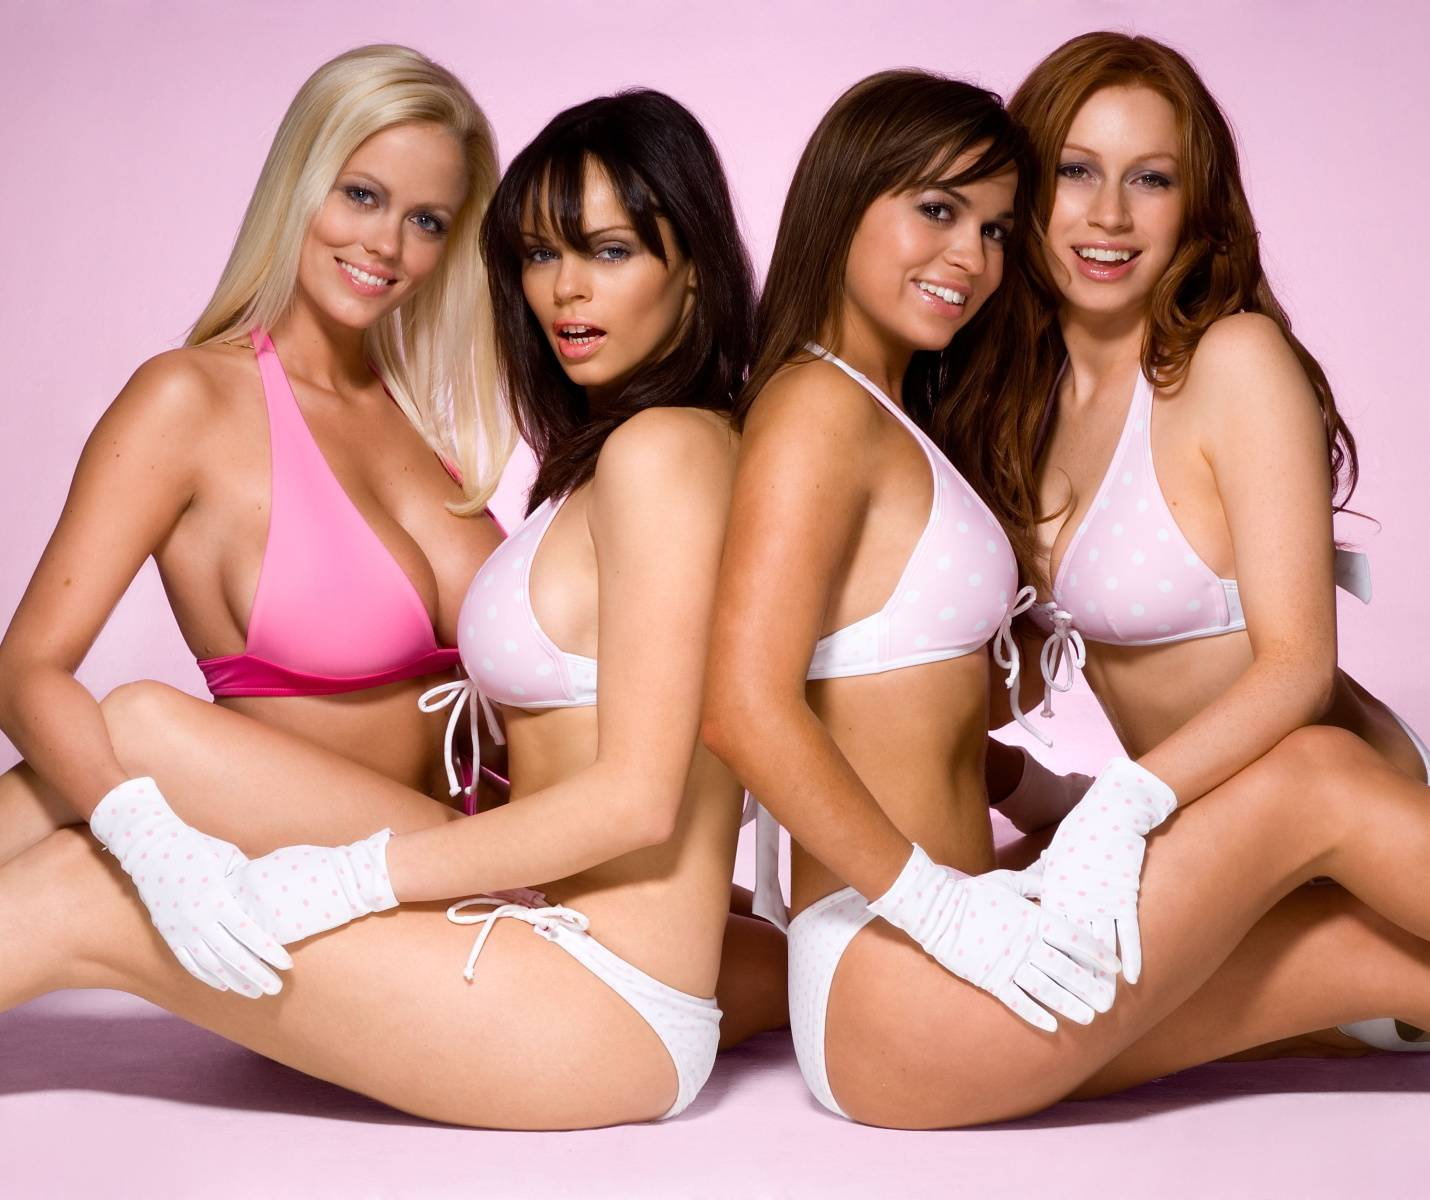 Group of hot girls — 5